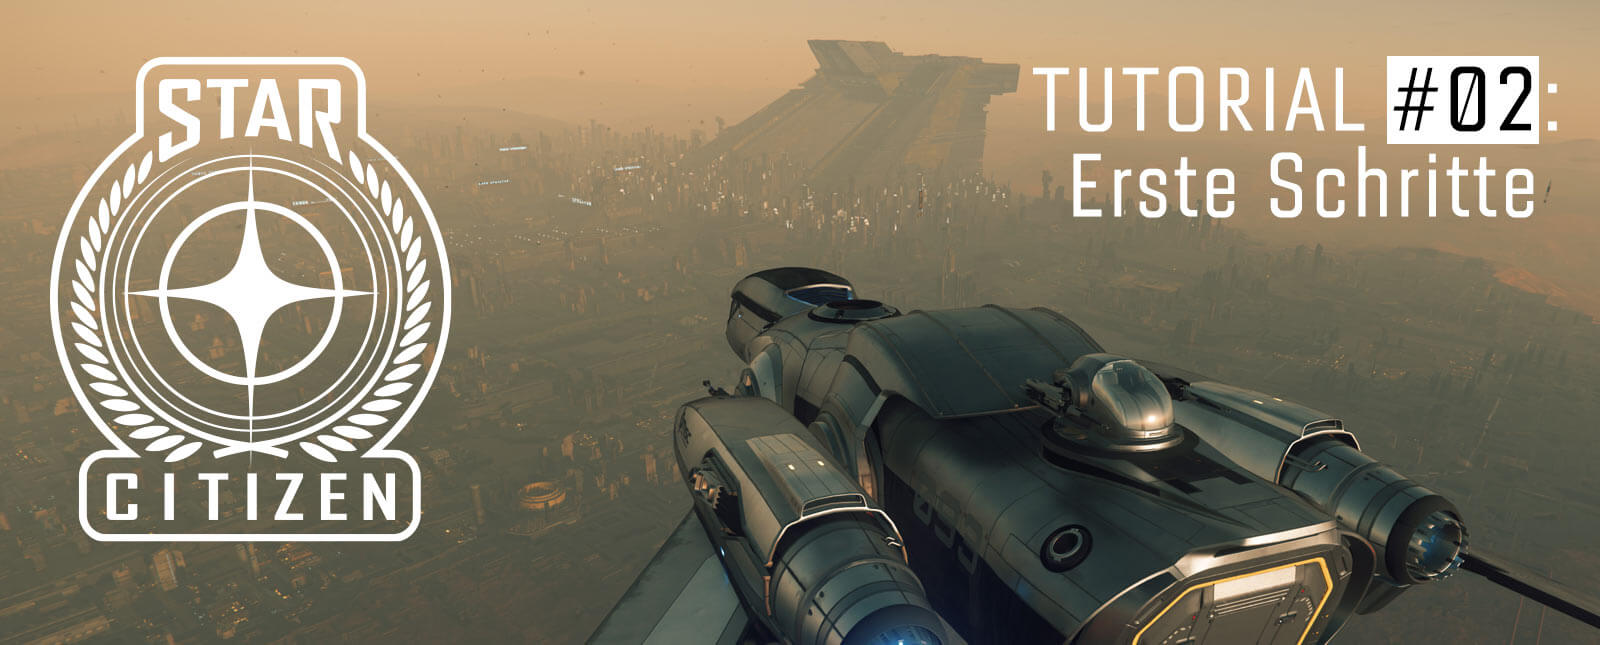 Haus Enten : Star Citizen : Tutorials